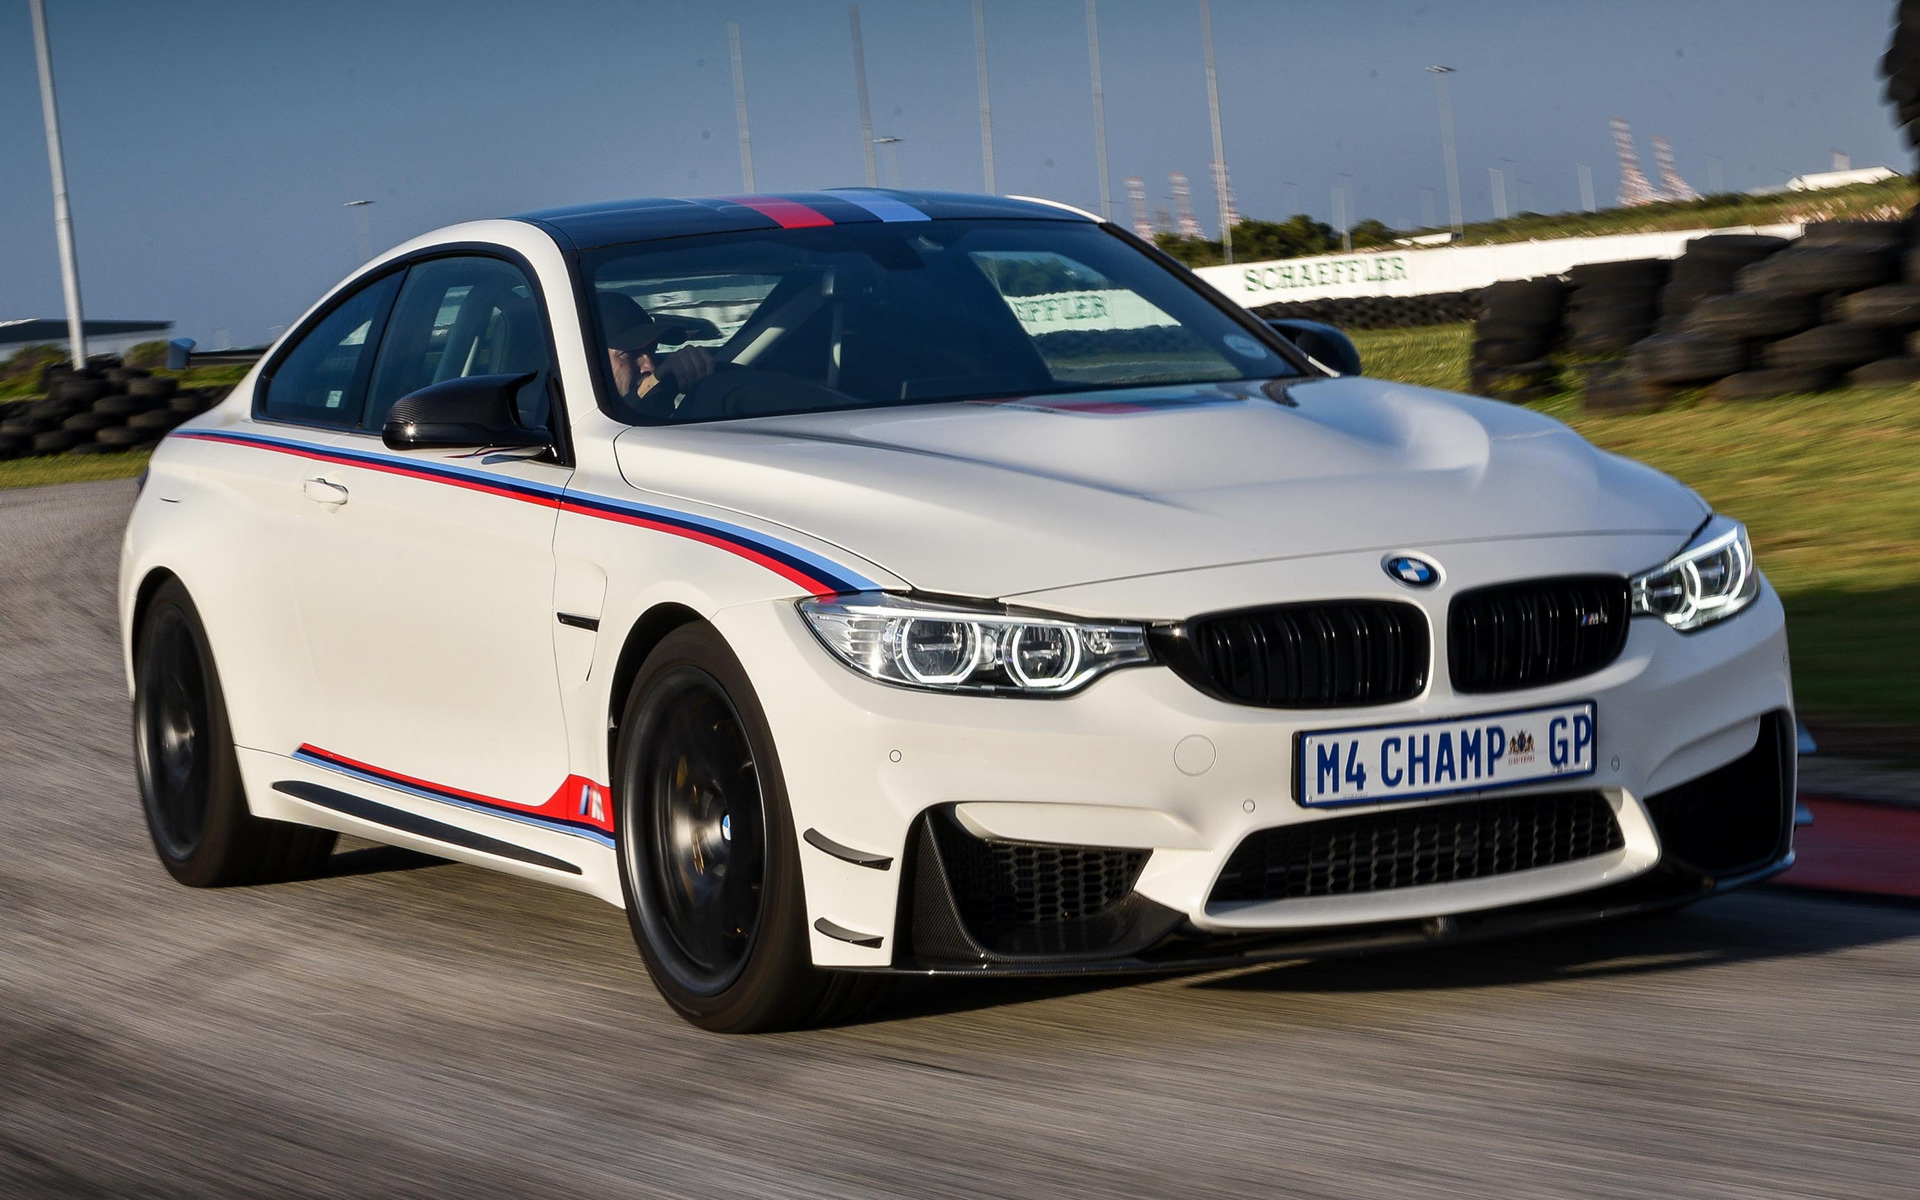 2017 Bmw M4 Coupe Dtm Champion Edition Za Wallpapers